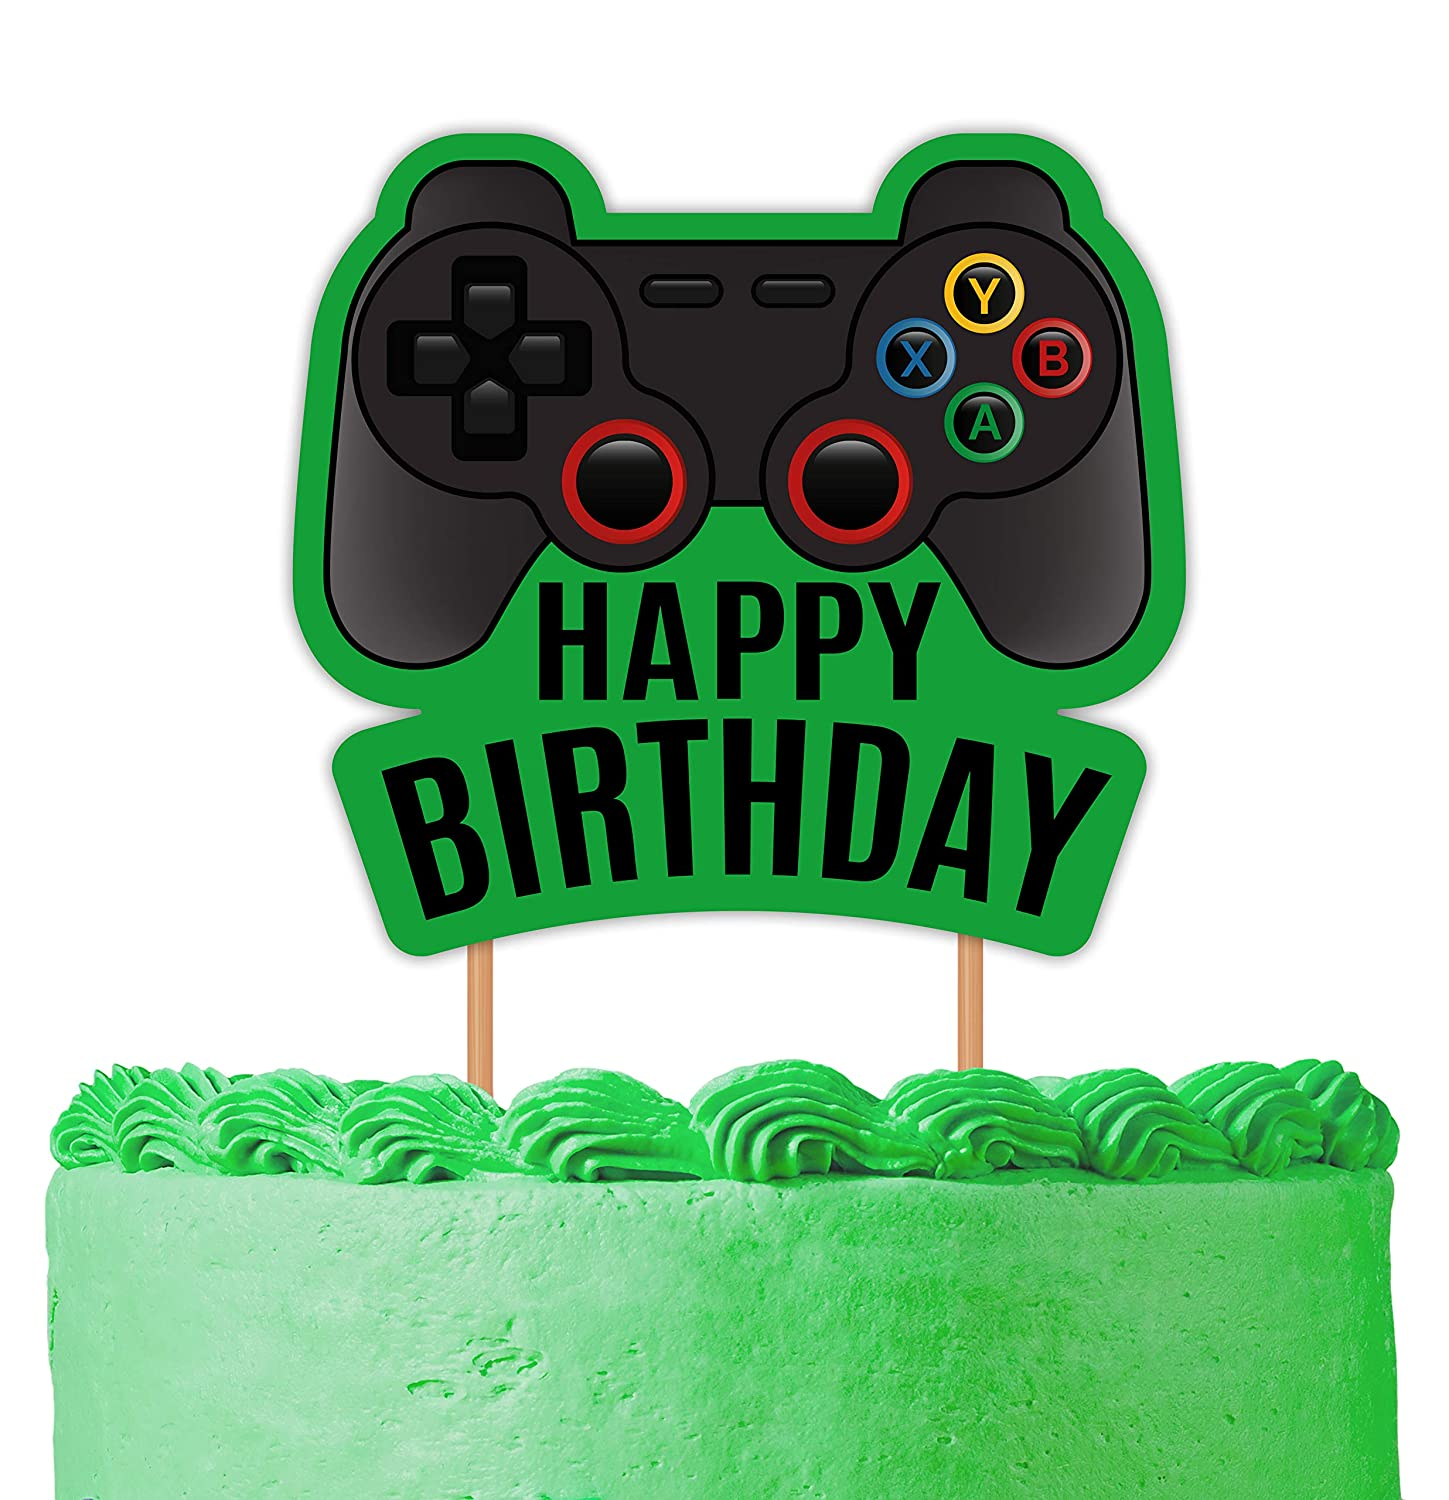 Glittery Happy 13th Birthday Video Gaming Cake Toppers for 13 Year Old Boy and Kids Video Game Themed Birthday Decorations Game Fans Party Favors Video Game Cake Topper